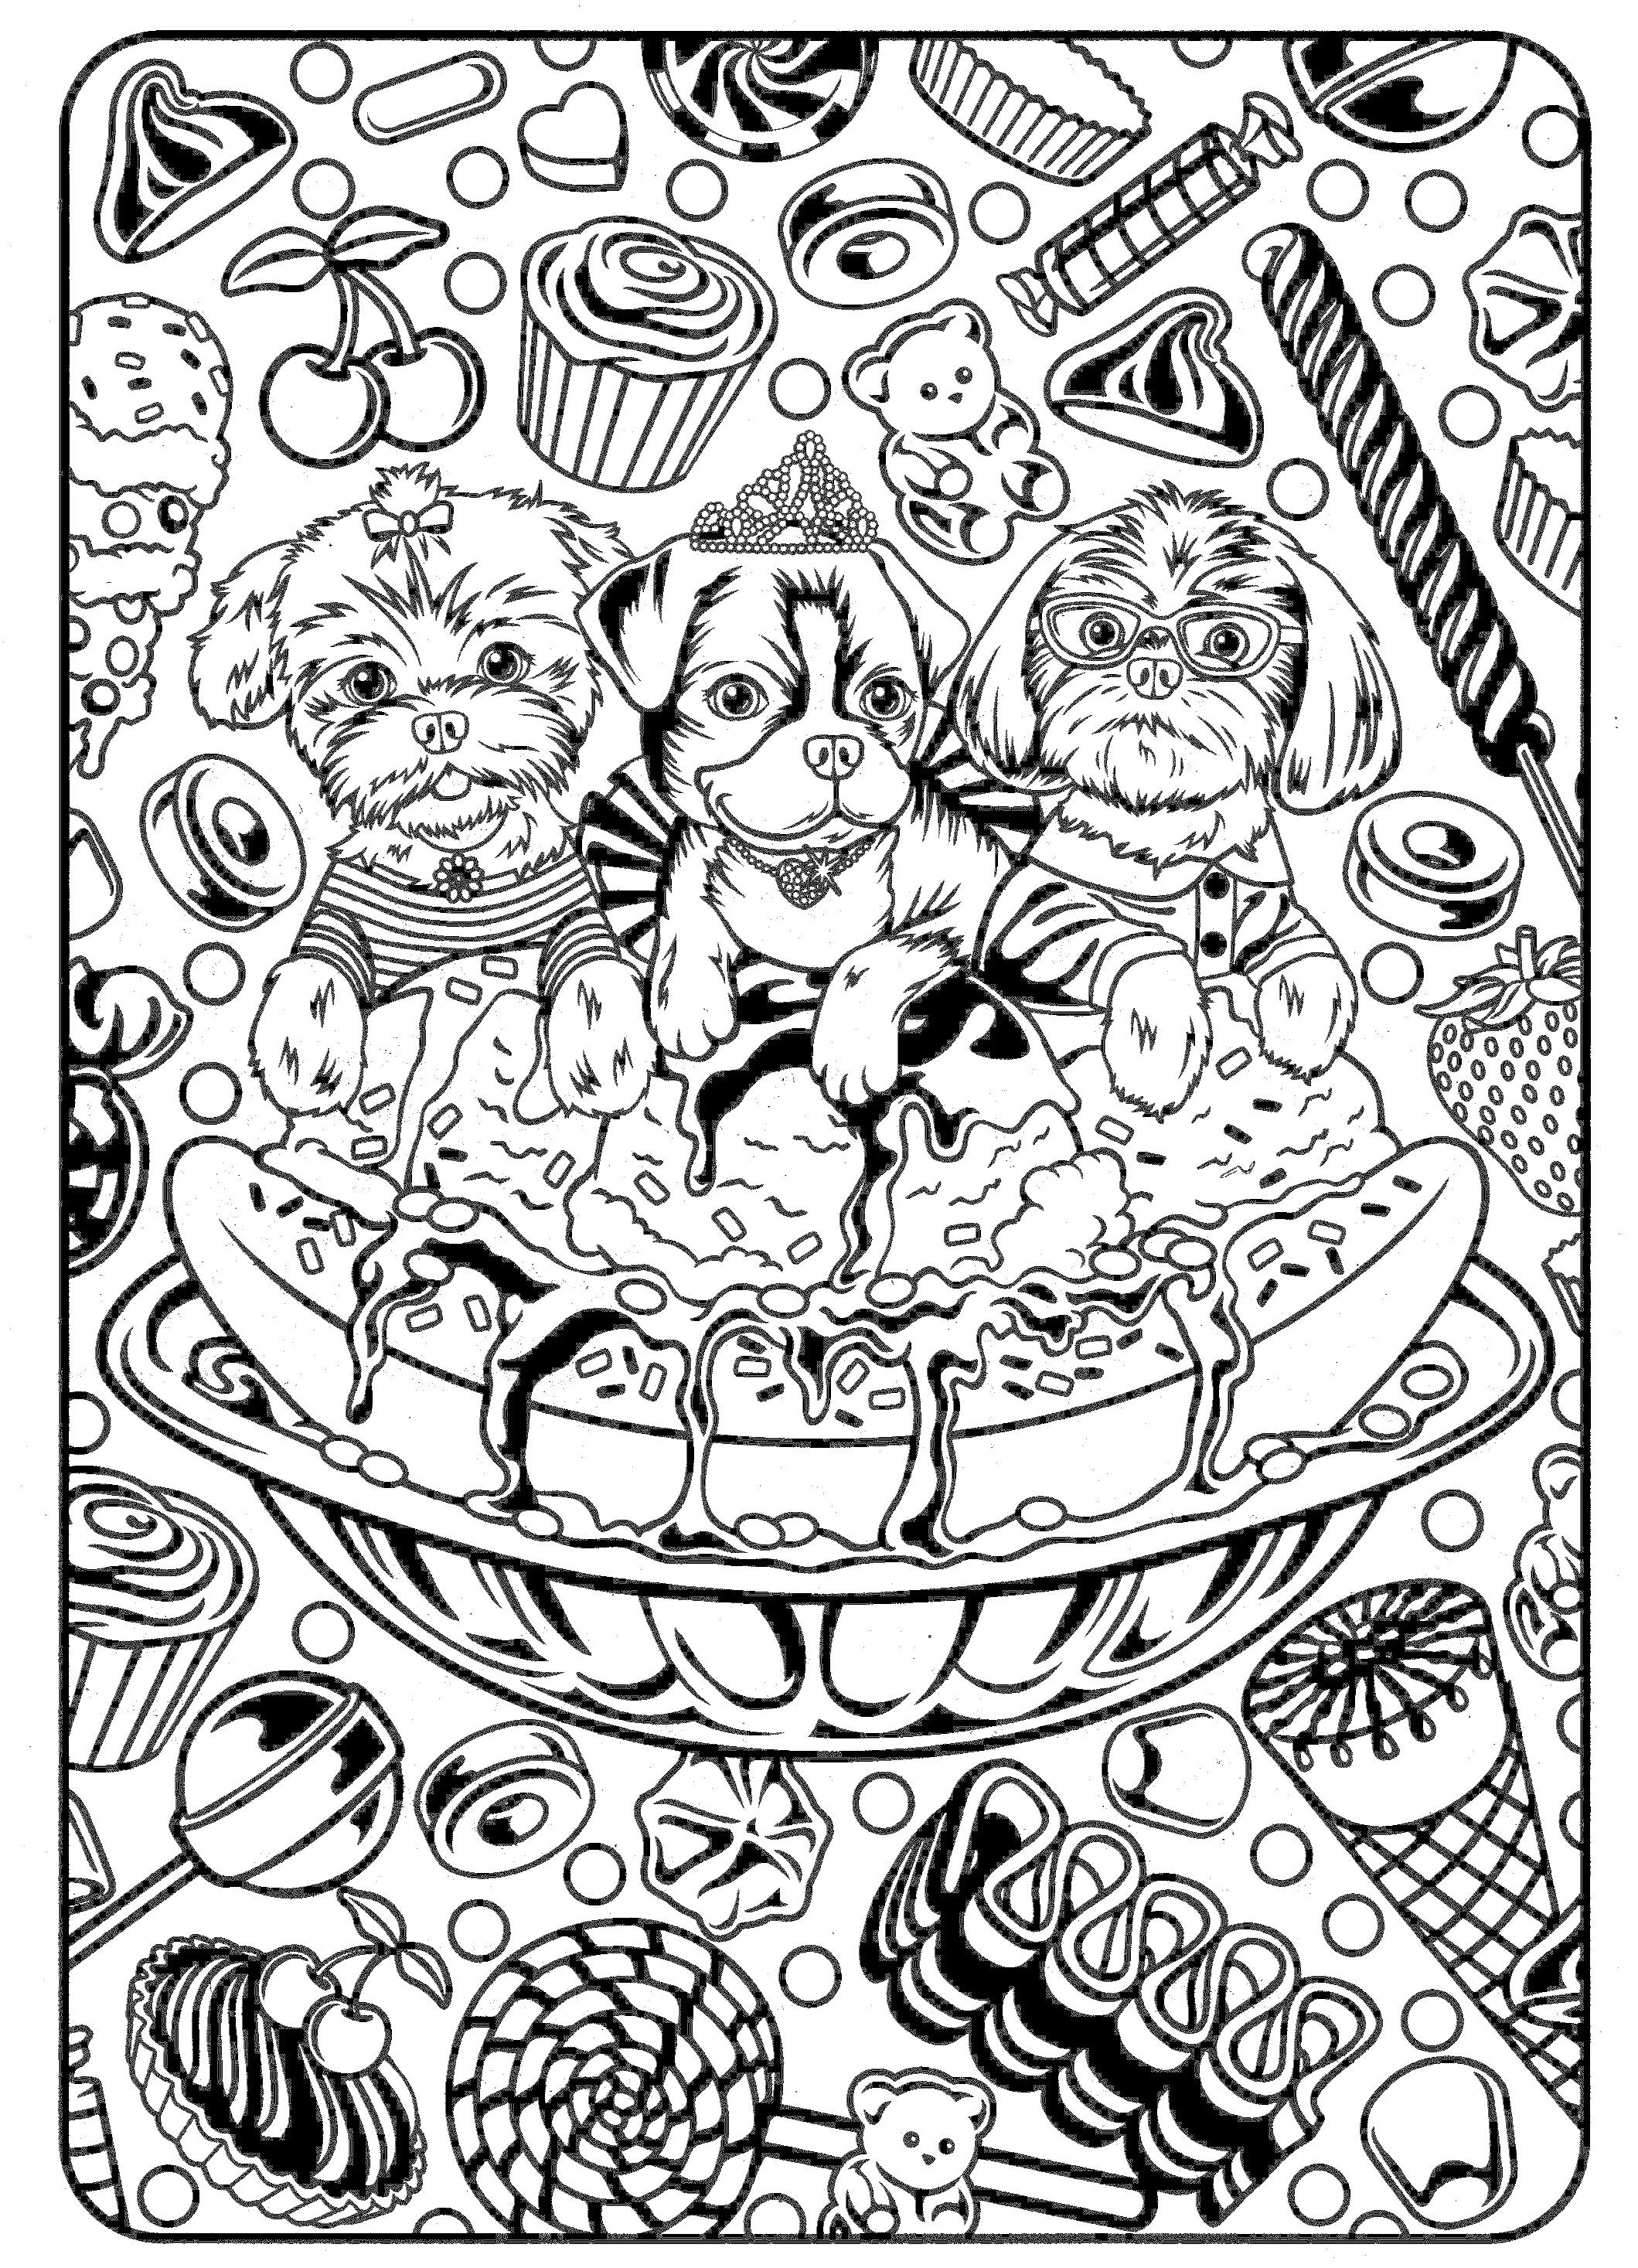 Lisa frank coloring pages to color online - Lisa Frank Coloring Pages